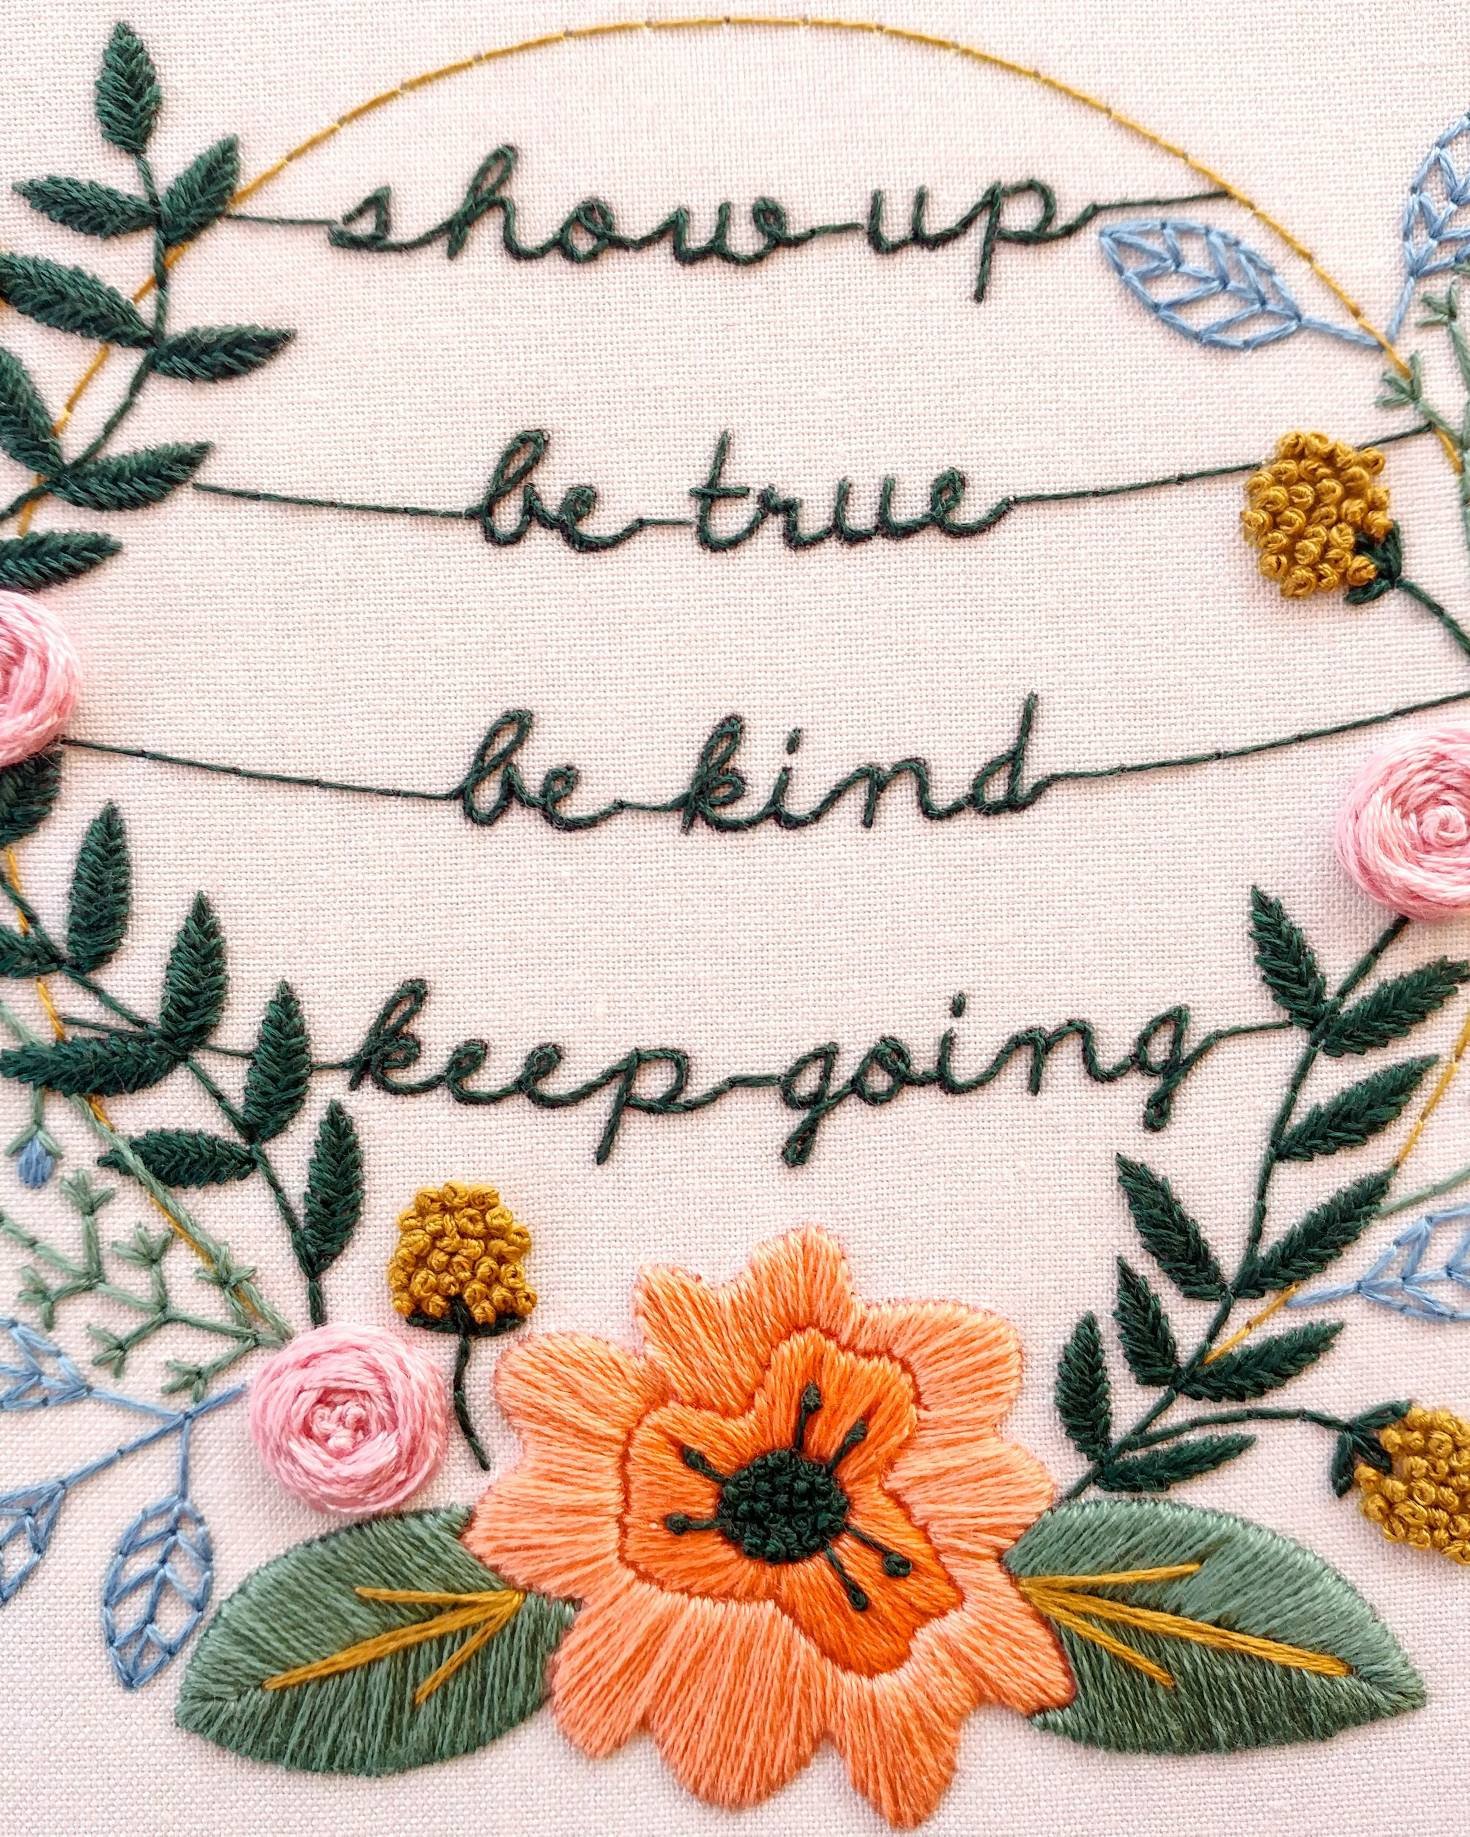 Show Up Embroidery Kit by Cozy Blue | #handembroidery #embroiderykit #embroiderypattern #etoile